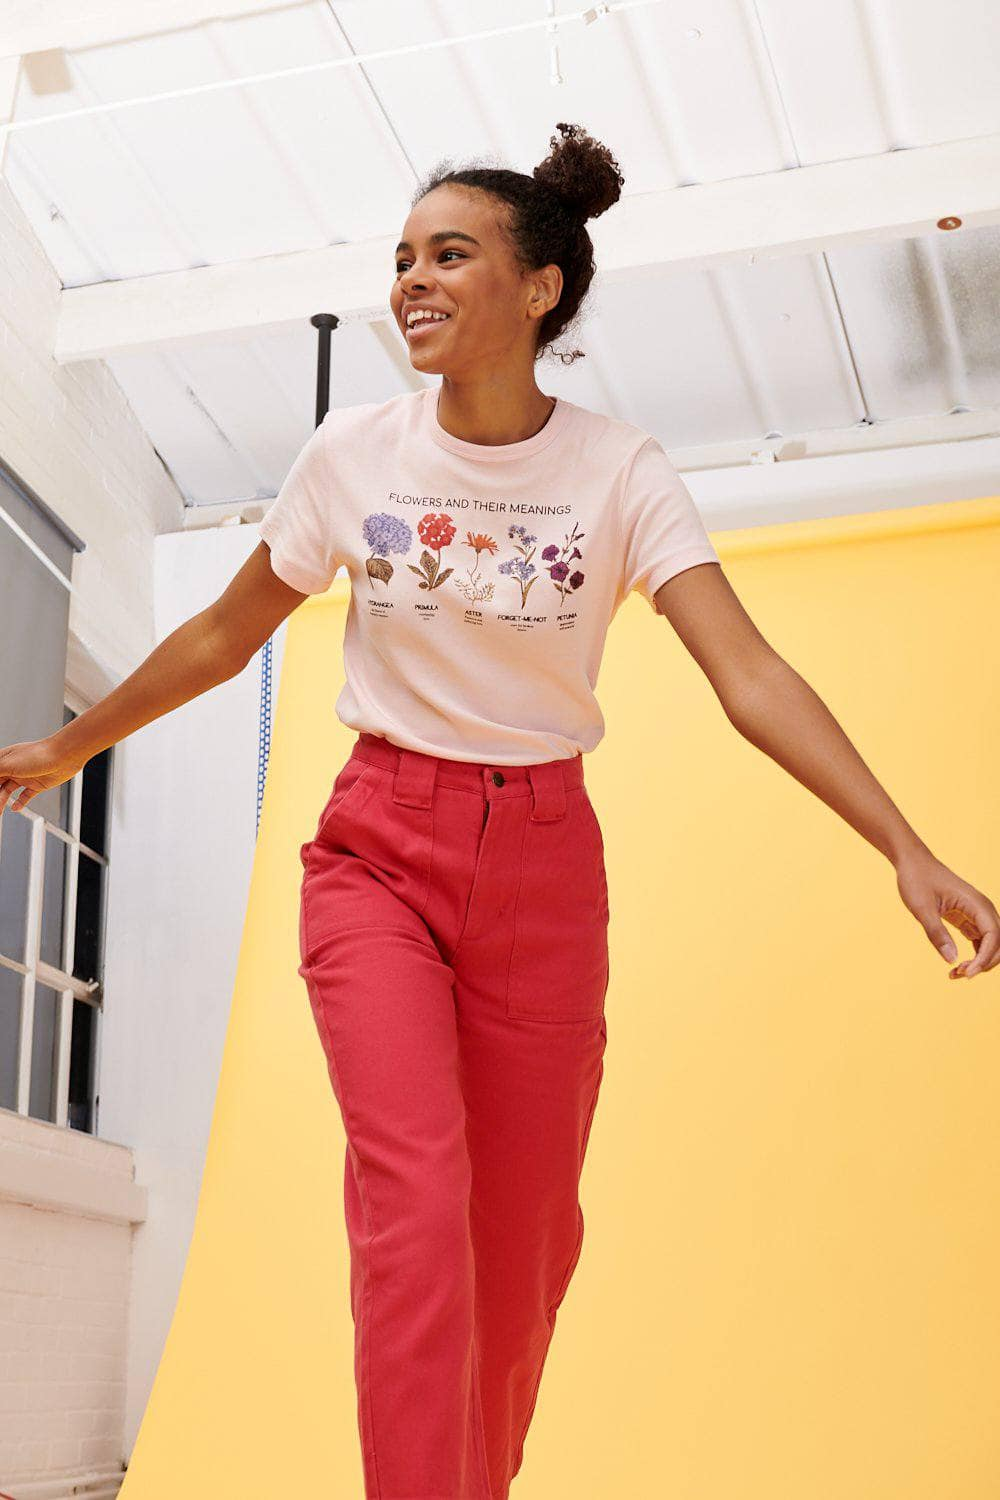 Lucy & Yak Tops 'Flowers' Organic Ribbed Tee in Pink